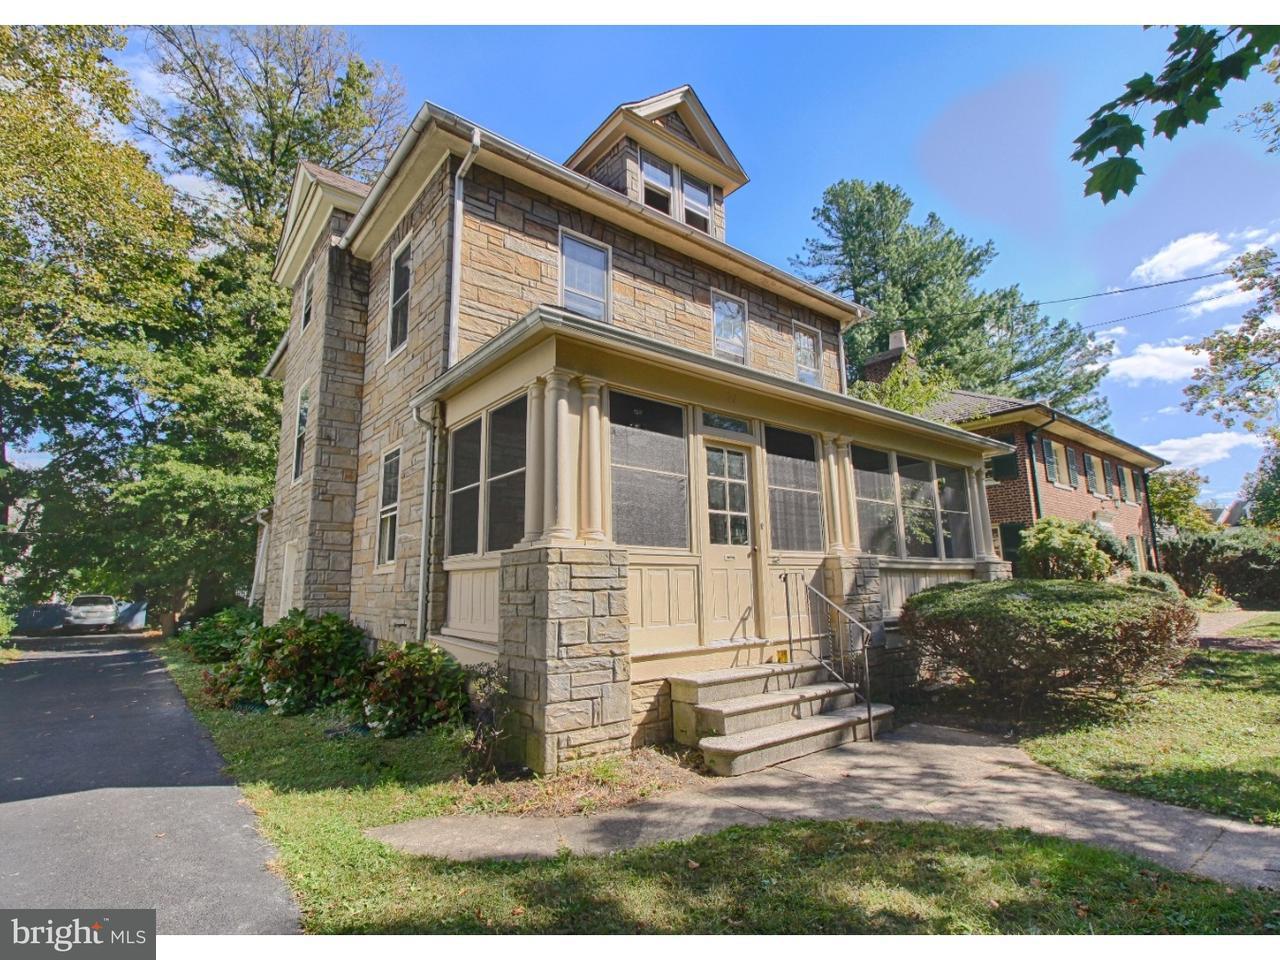 Single Family Home for Sale at 21 FRANKLIN Avenue Merchantville, New Jersey 08109 United States